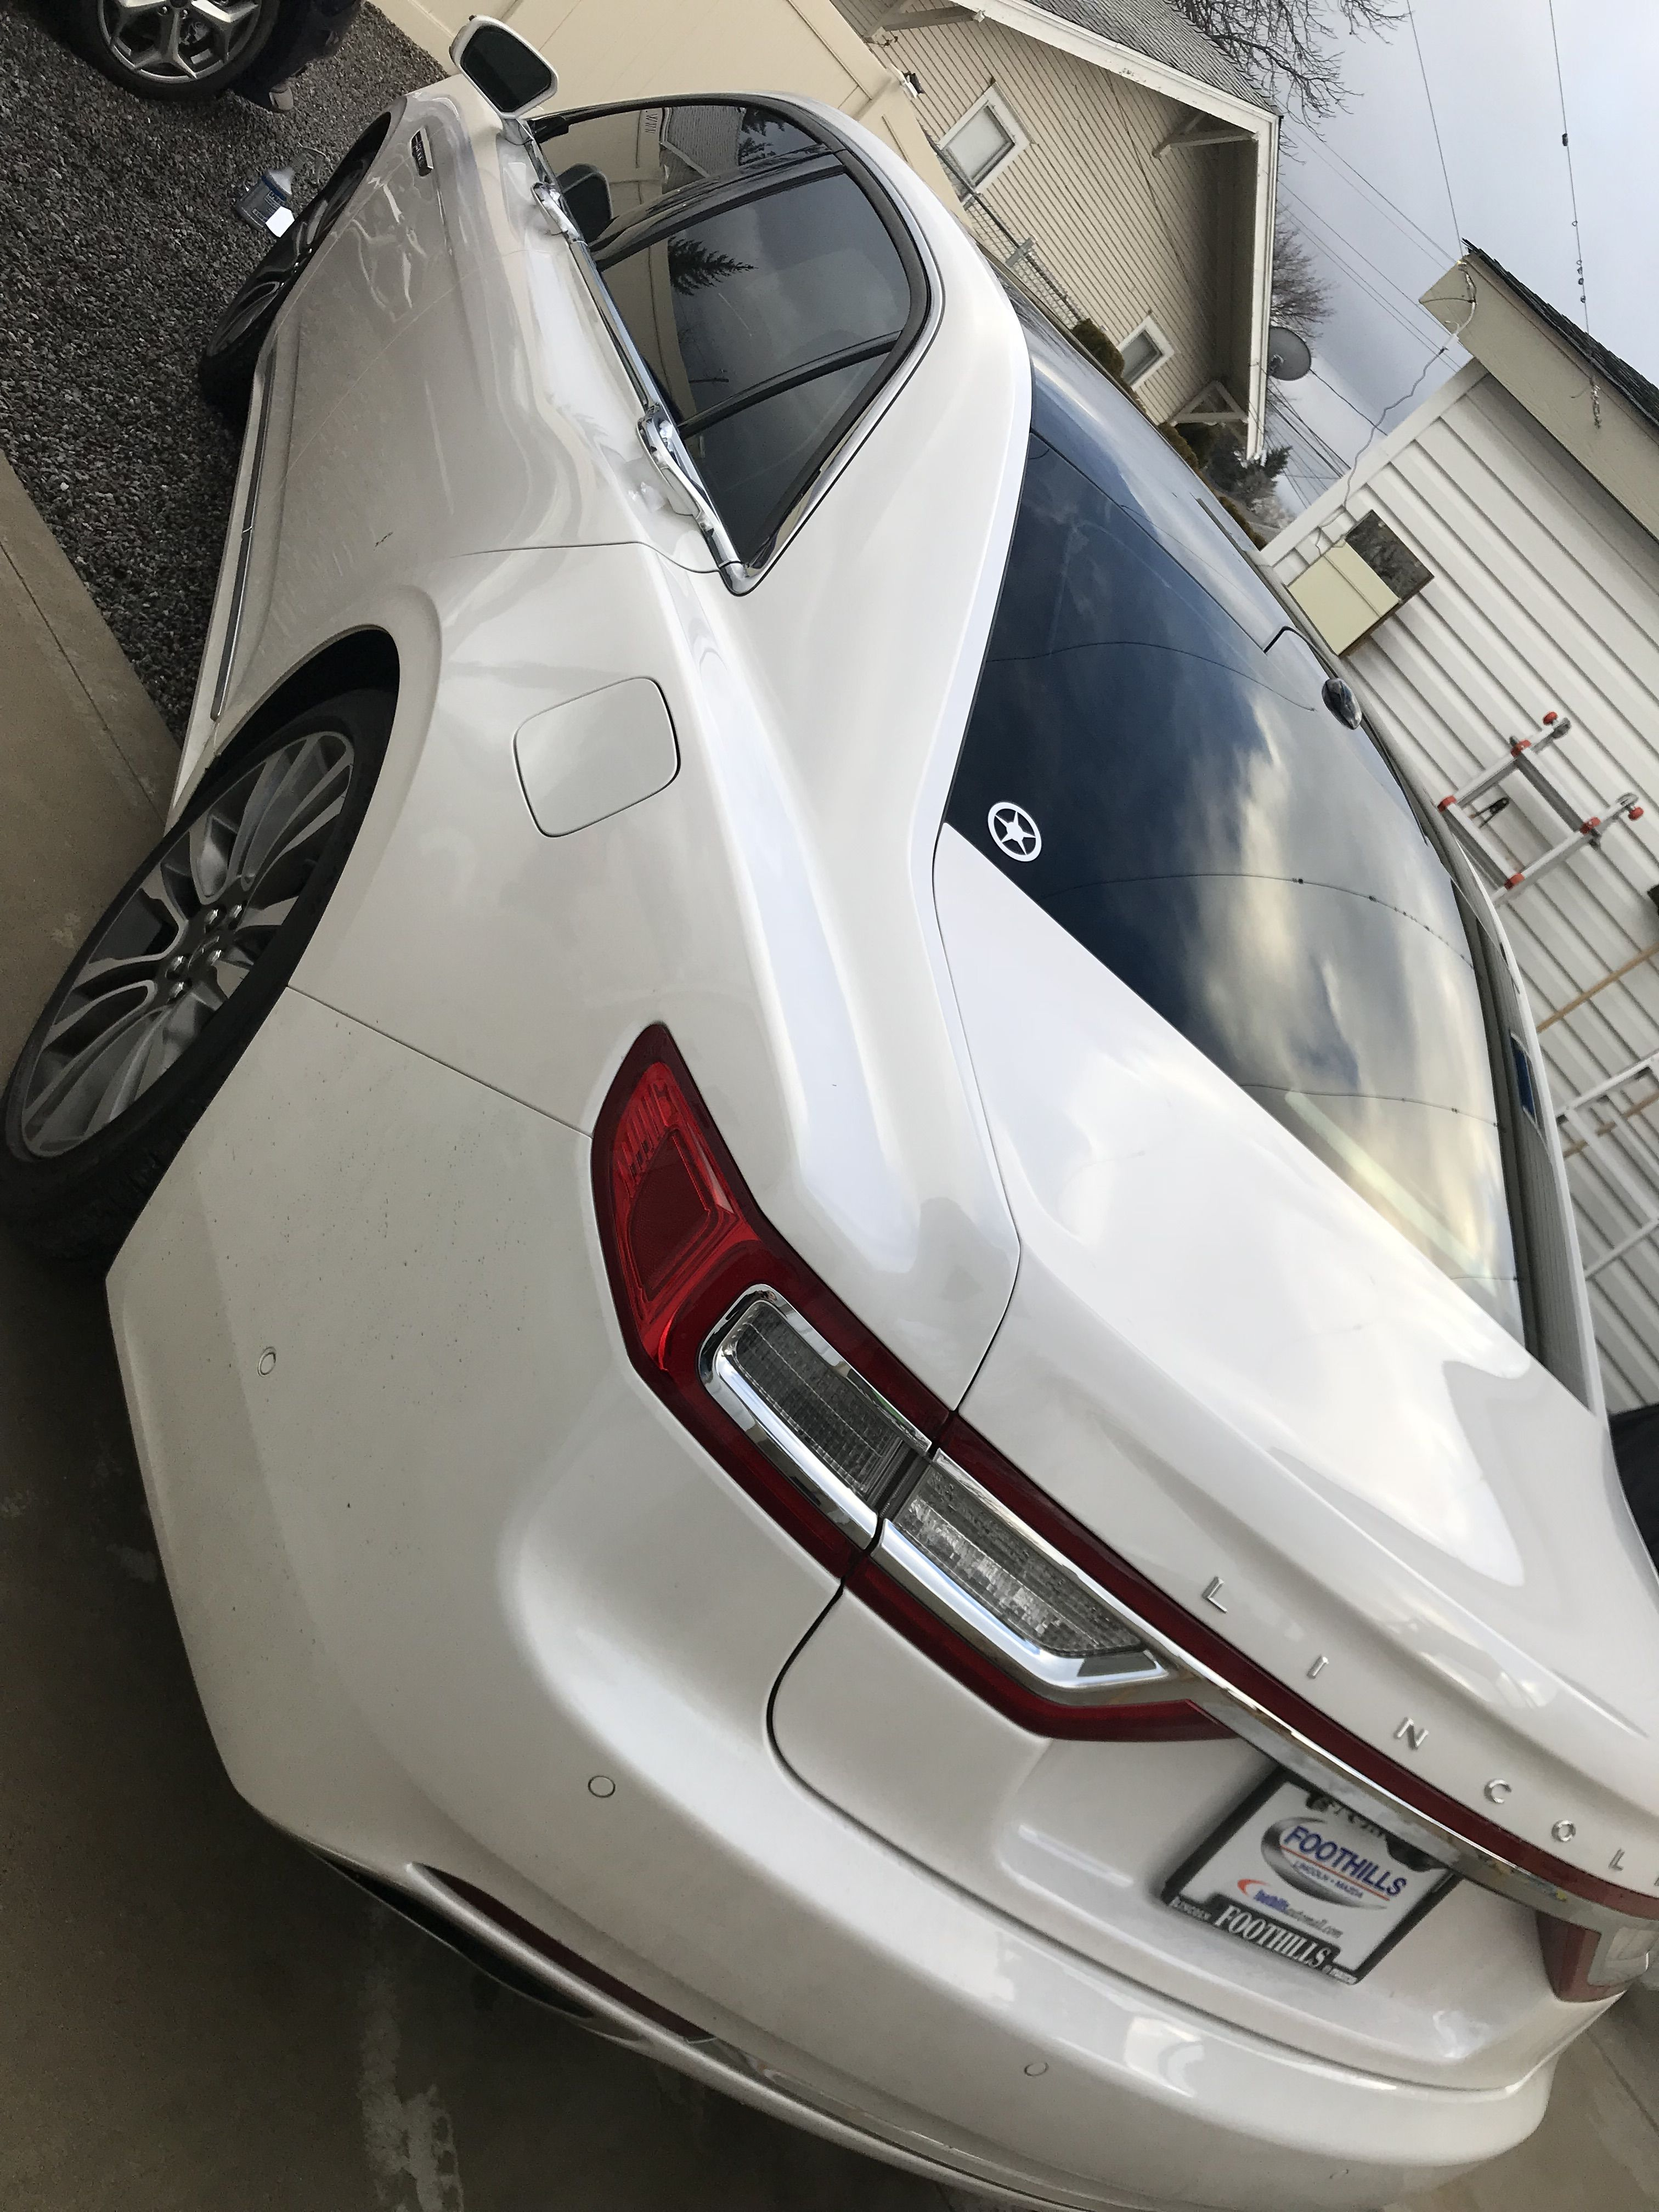 Sick new Tint job done here on this brand new Lincoln ...